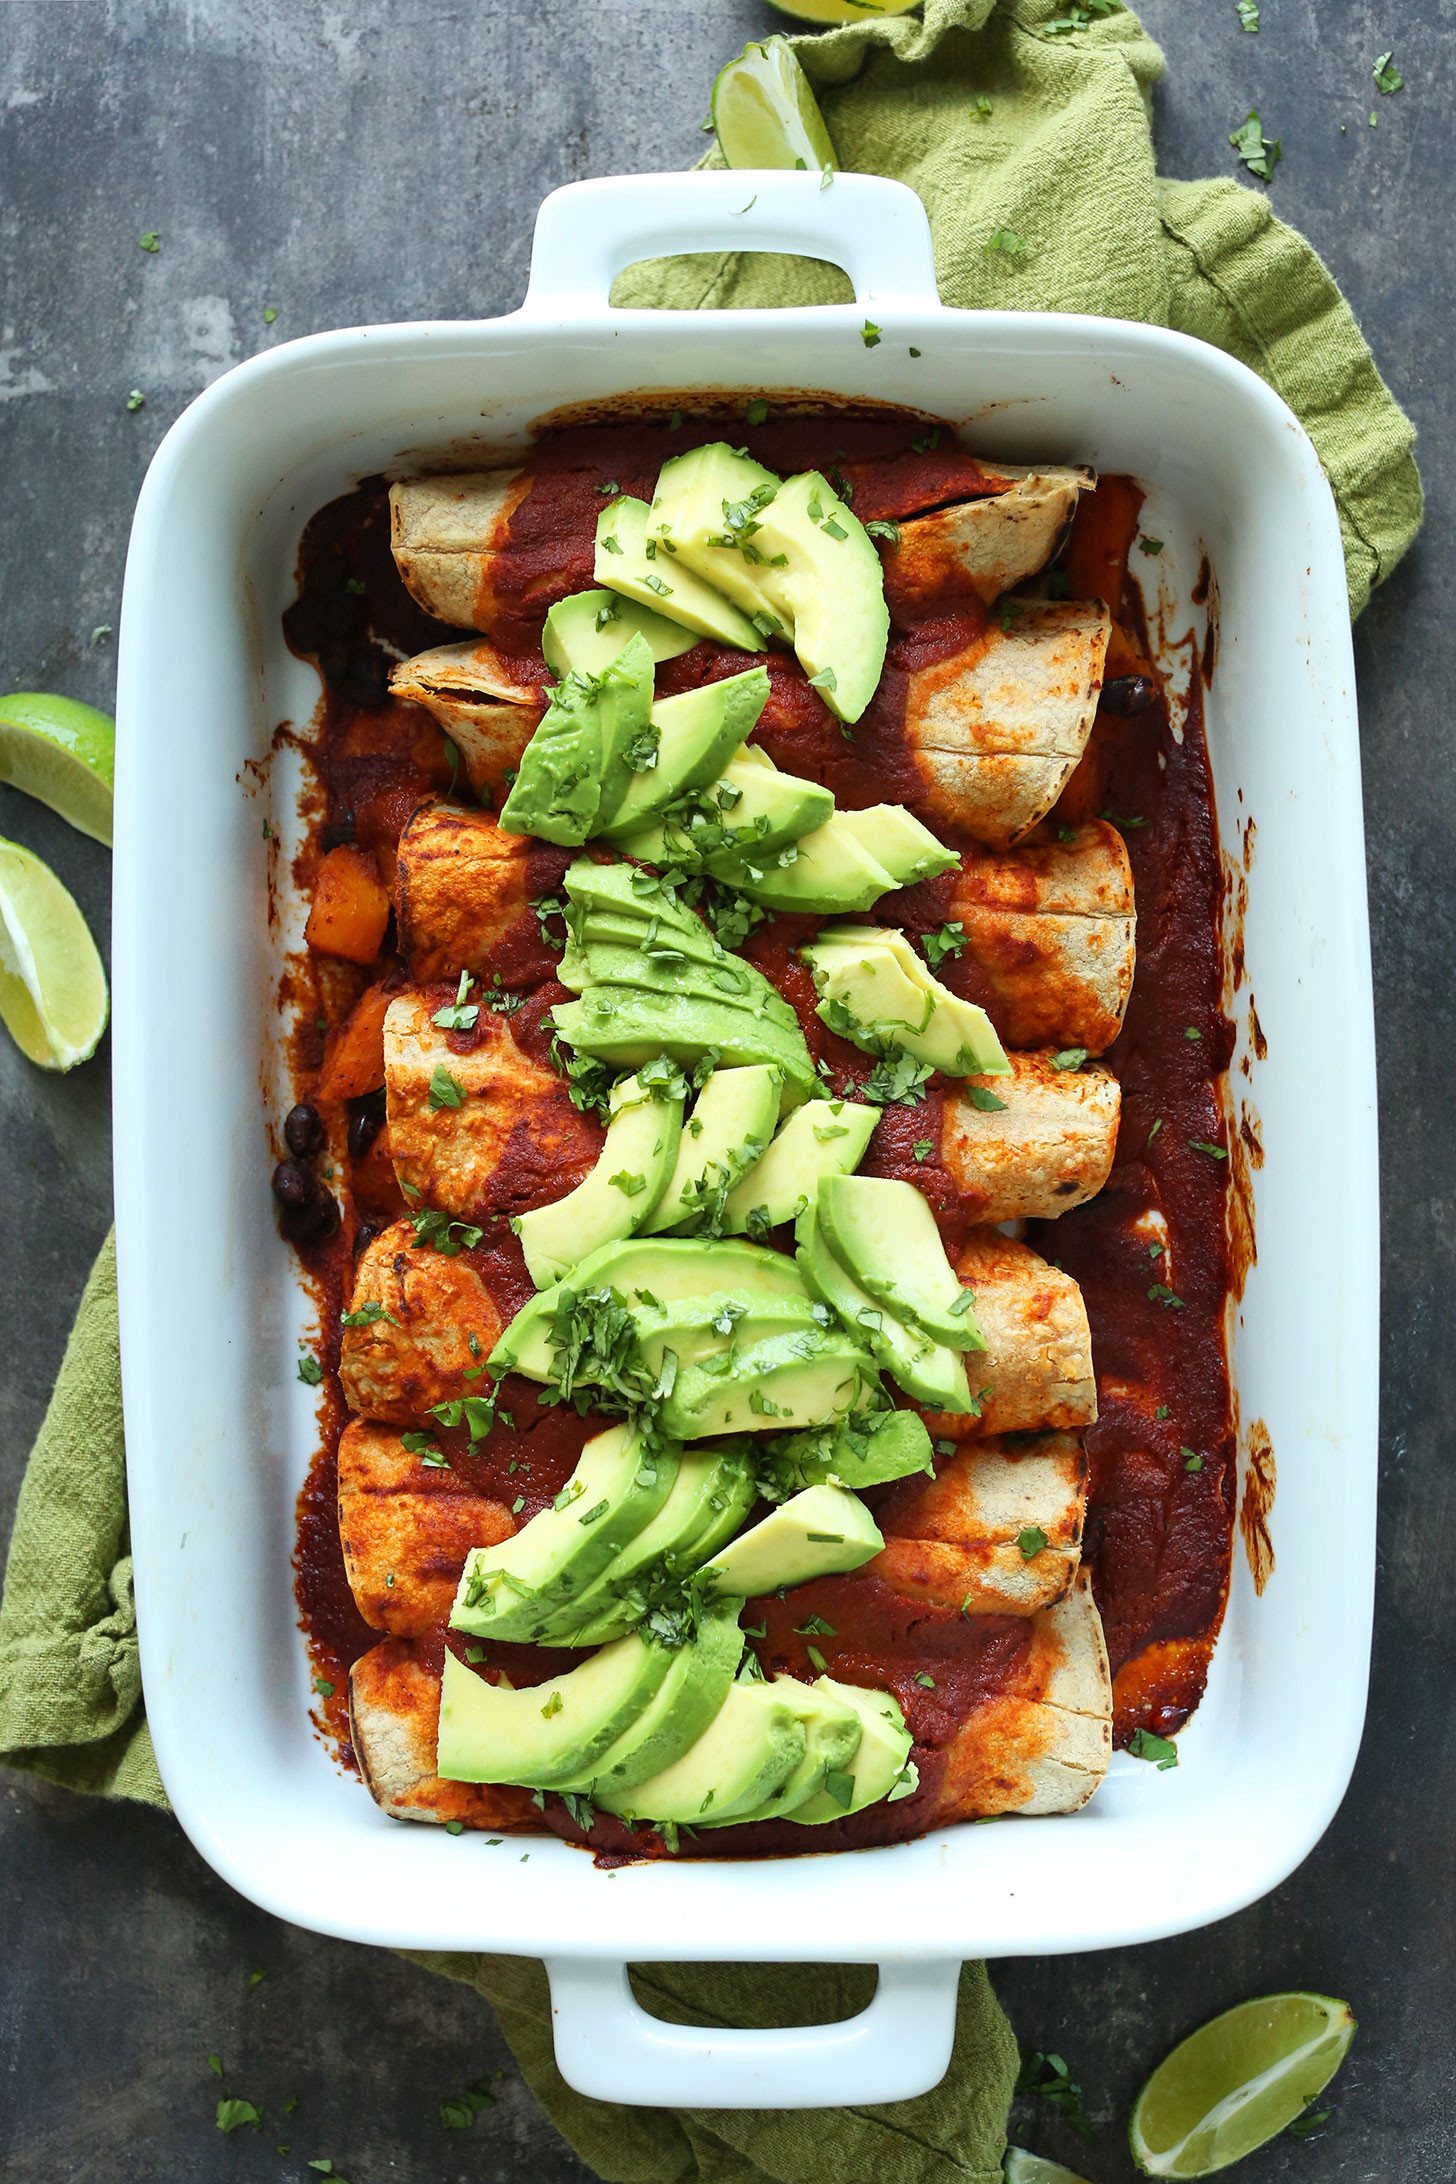 Black Vegan Recipes  Butternut Squash Black Bean Enchiladas